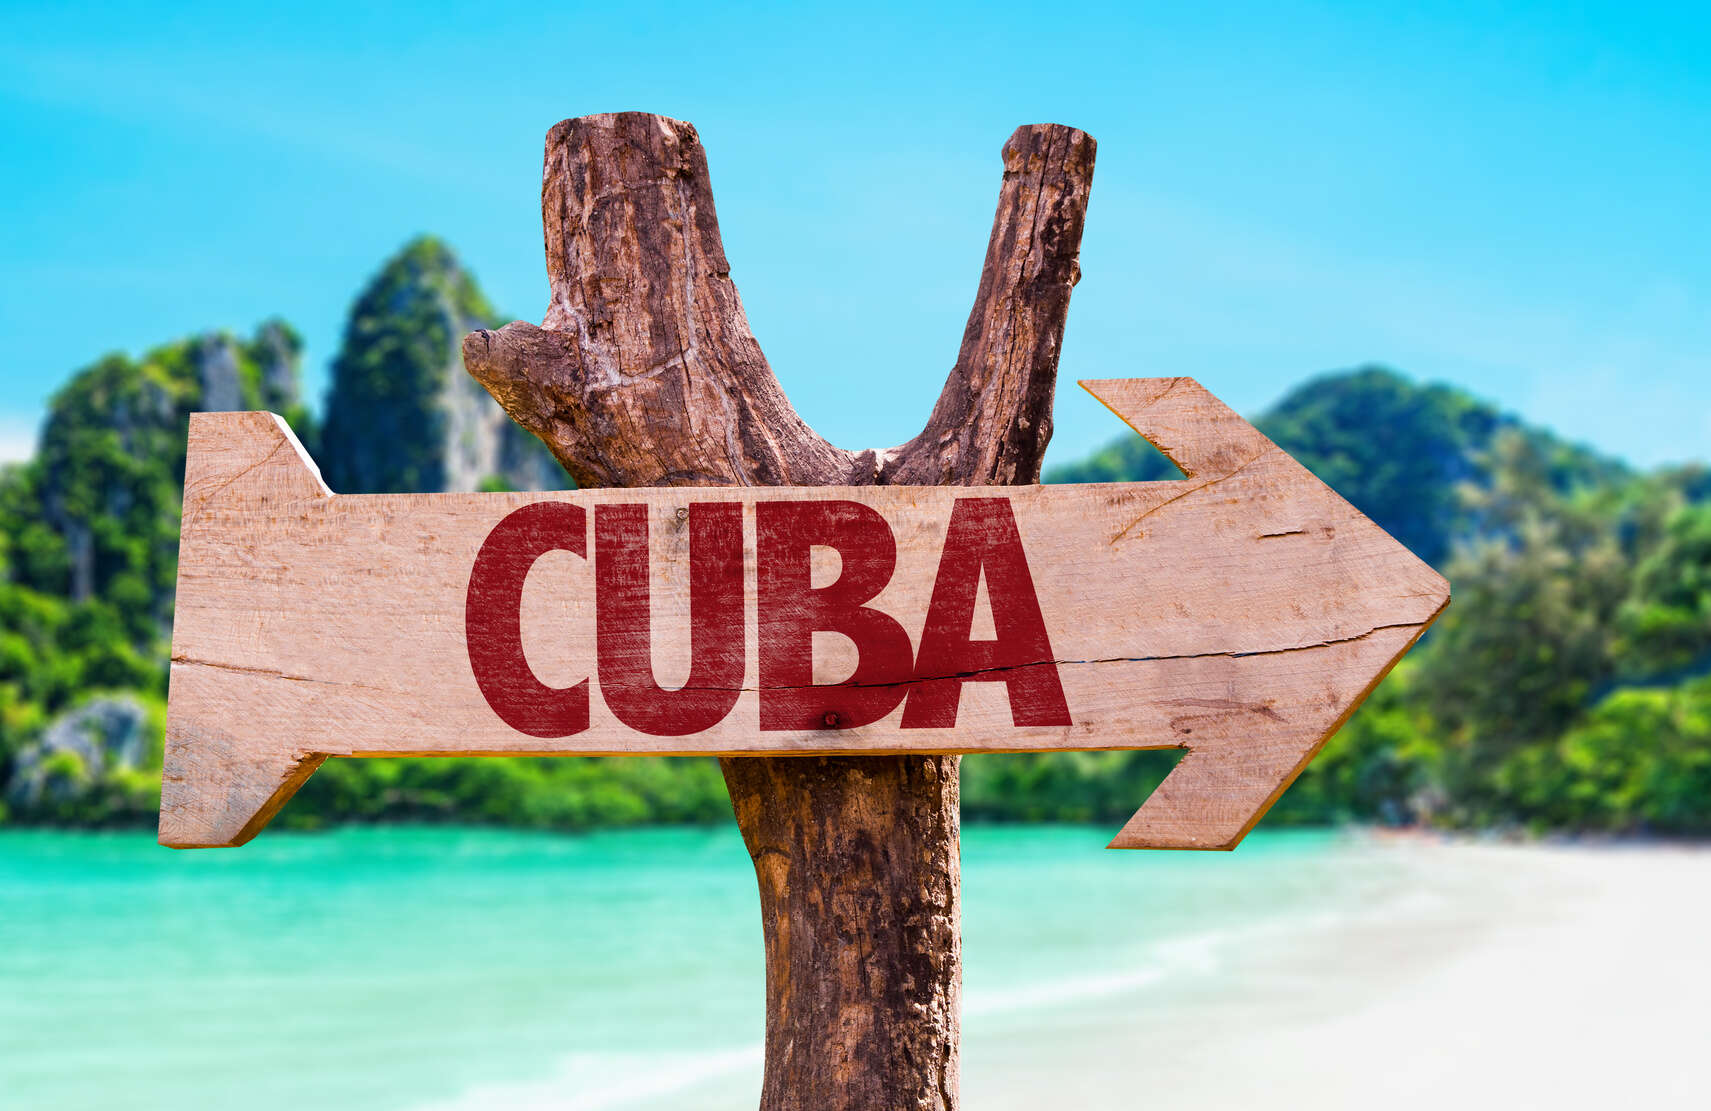 Vacationing in Cuba: Top 5 Destinations